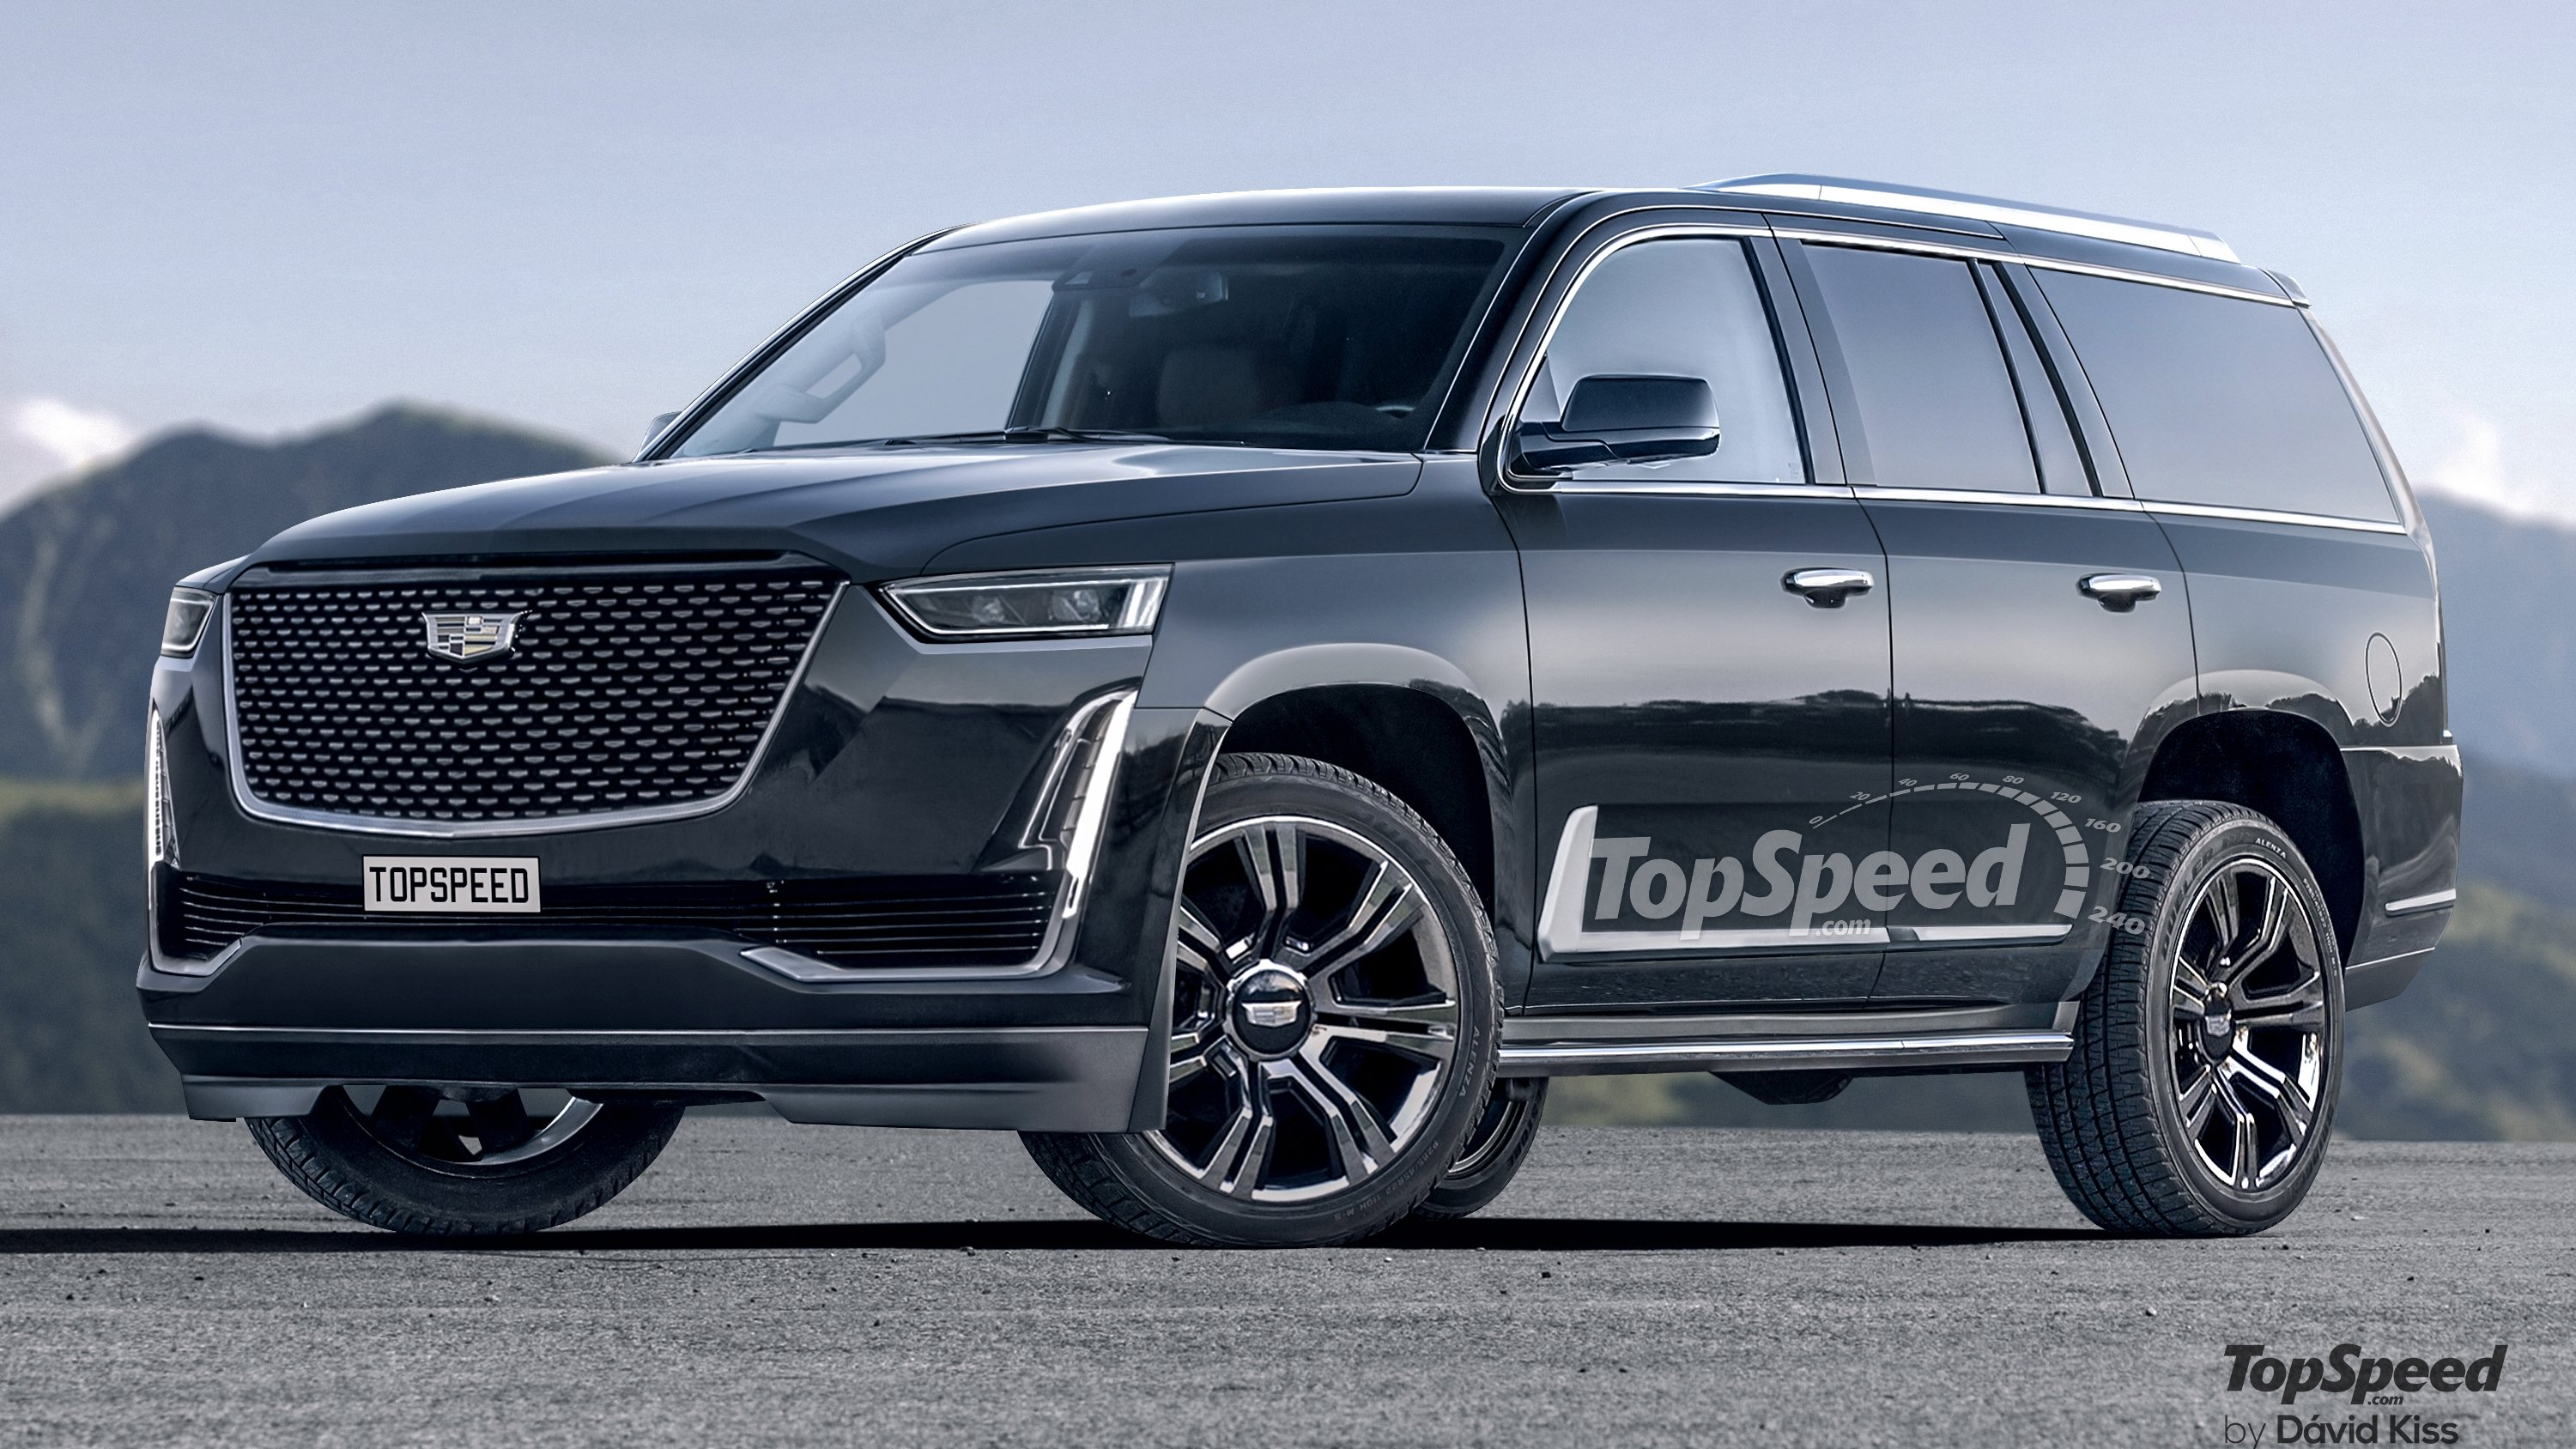 16 All New 2020 Cadillac Suv Lineup Style by 2020 Cadillac Suv Lineup